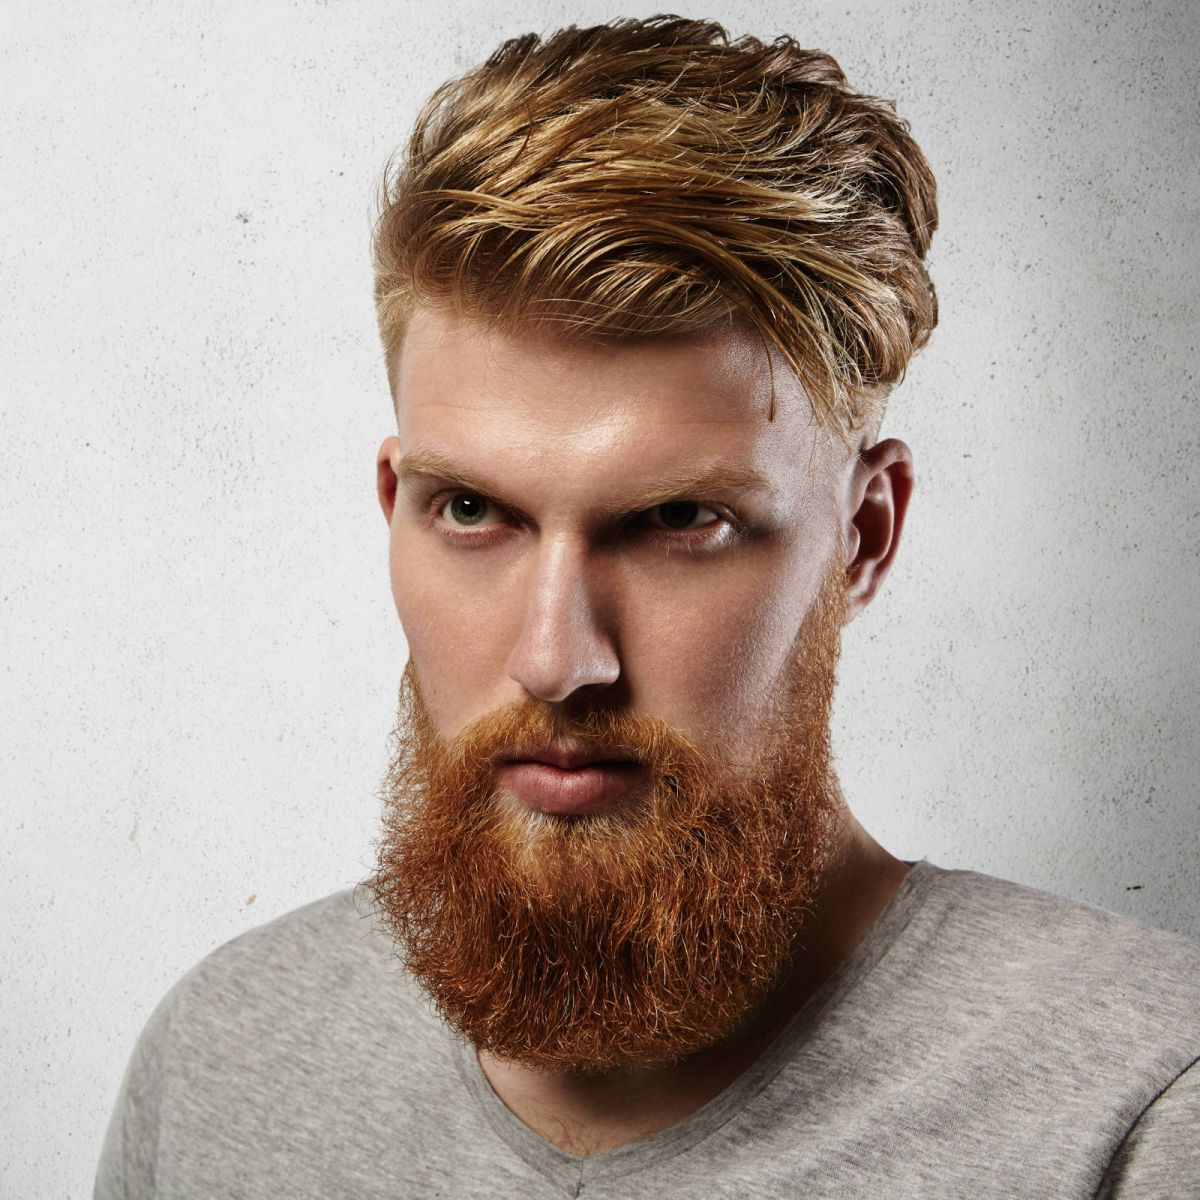 21 Eye Catching Red Hair Men's Hairstyles (Ginger Hairstyles) With Soft Curly Tapered Pixie Hairstyles (View 21 of 25)